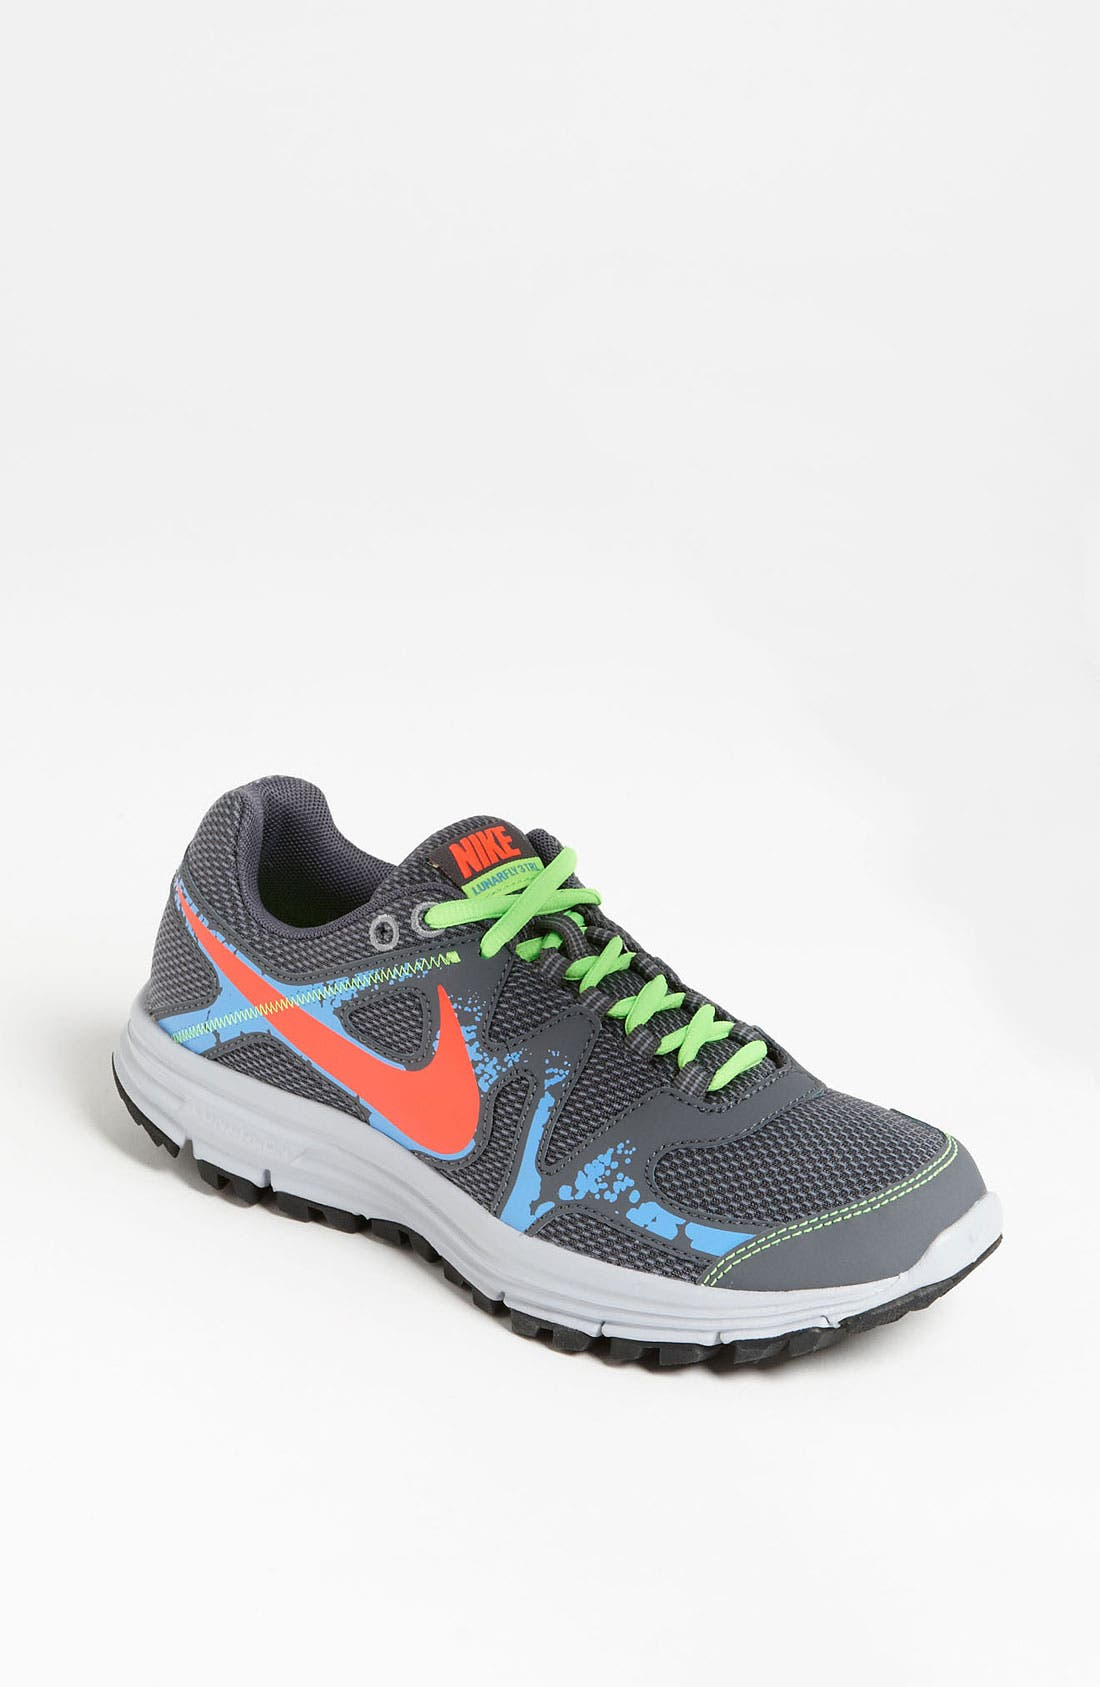 Main Image - Nike 'Lunarfly+ 3 Trail' Running Shoe (Women)